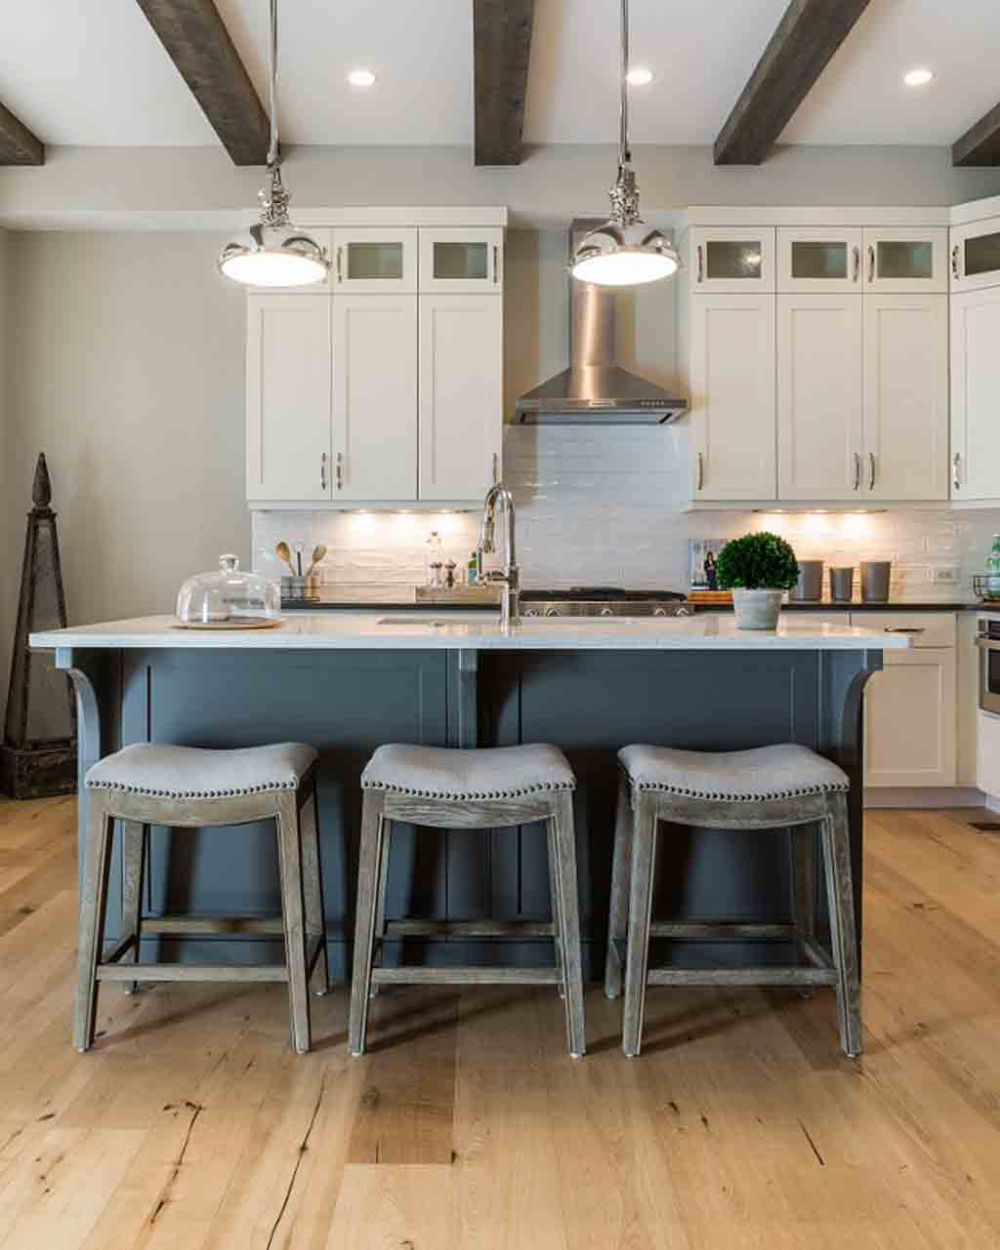 dover white sw 6385 review by laura rugh white farmhouse kitchens hardwood floors in kitchen on farmhouse kitchen wall colors id=12193